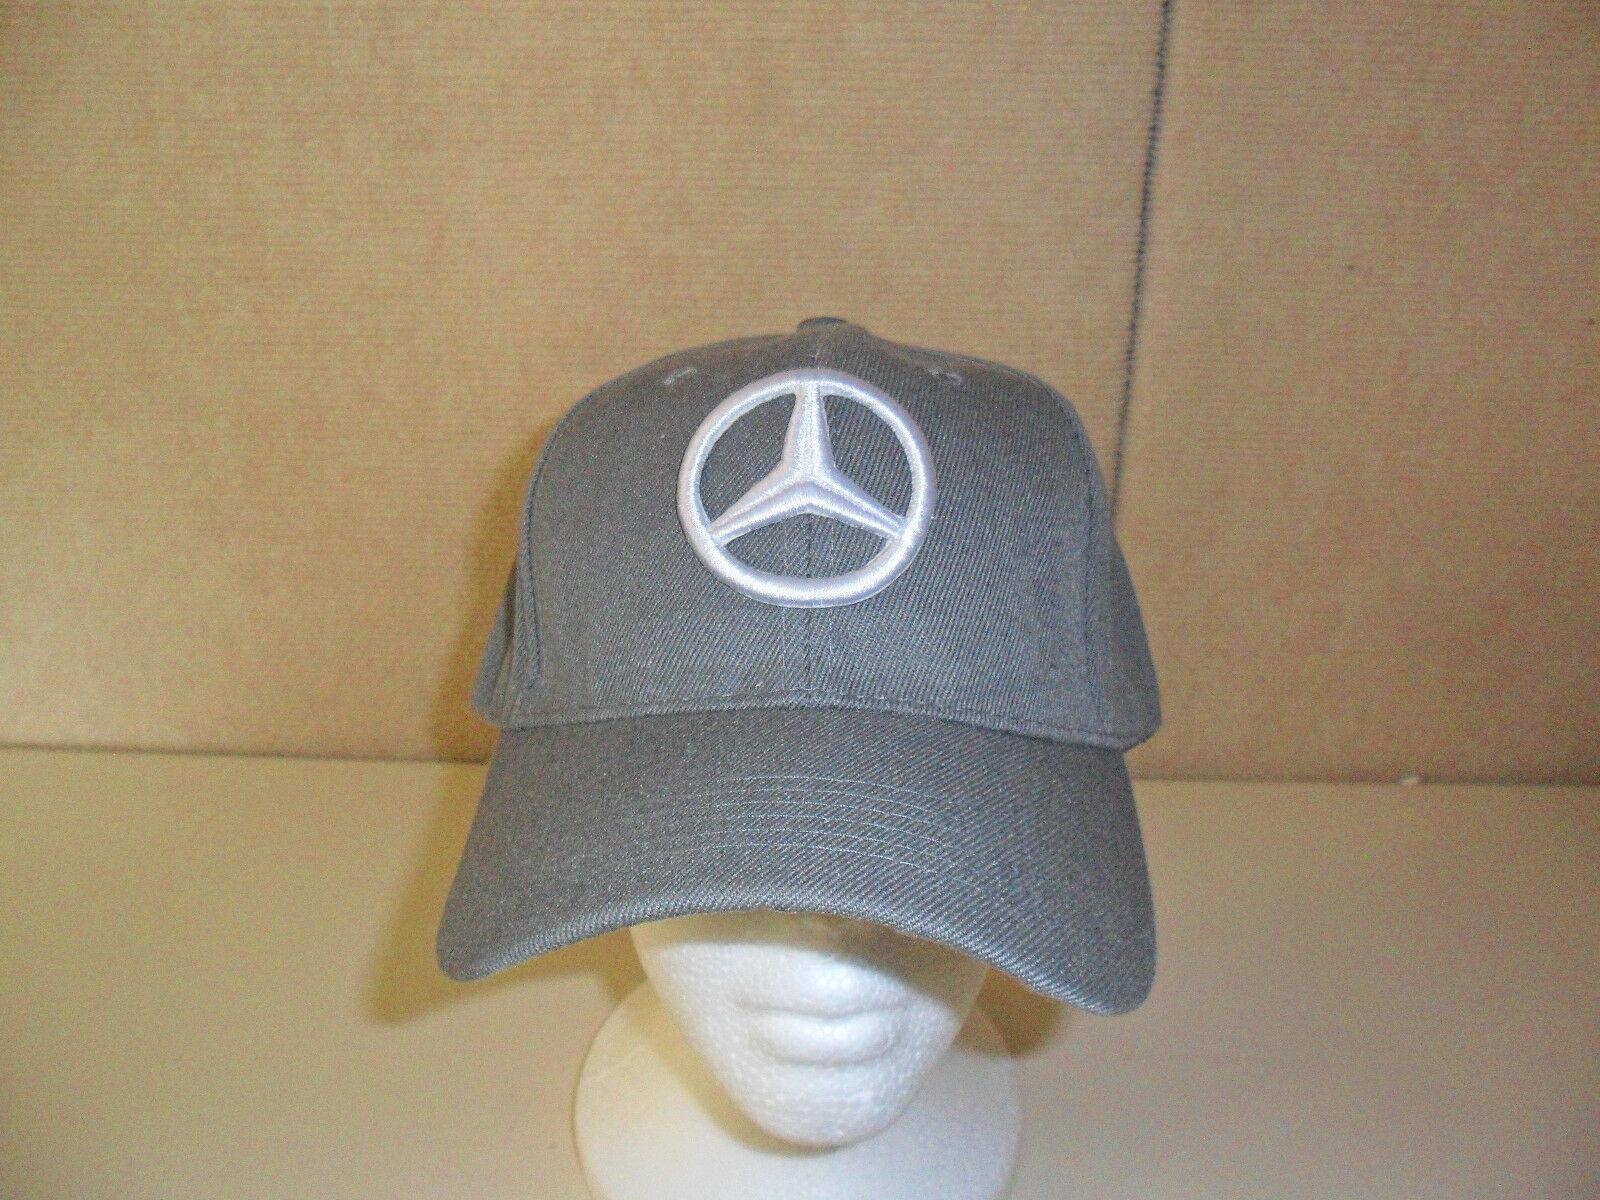 MERCEDES-BENZ TEAL HAT TEAL MERCEDES-BENZ FREE SHIPPING GREAT GIFT 48091a